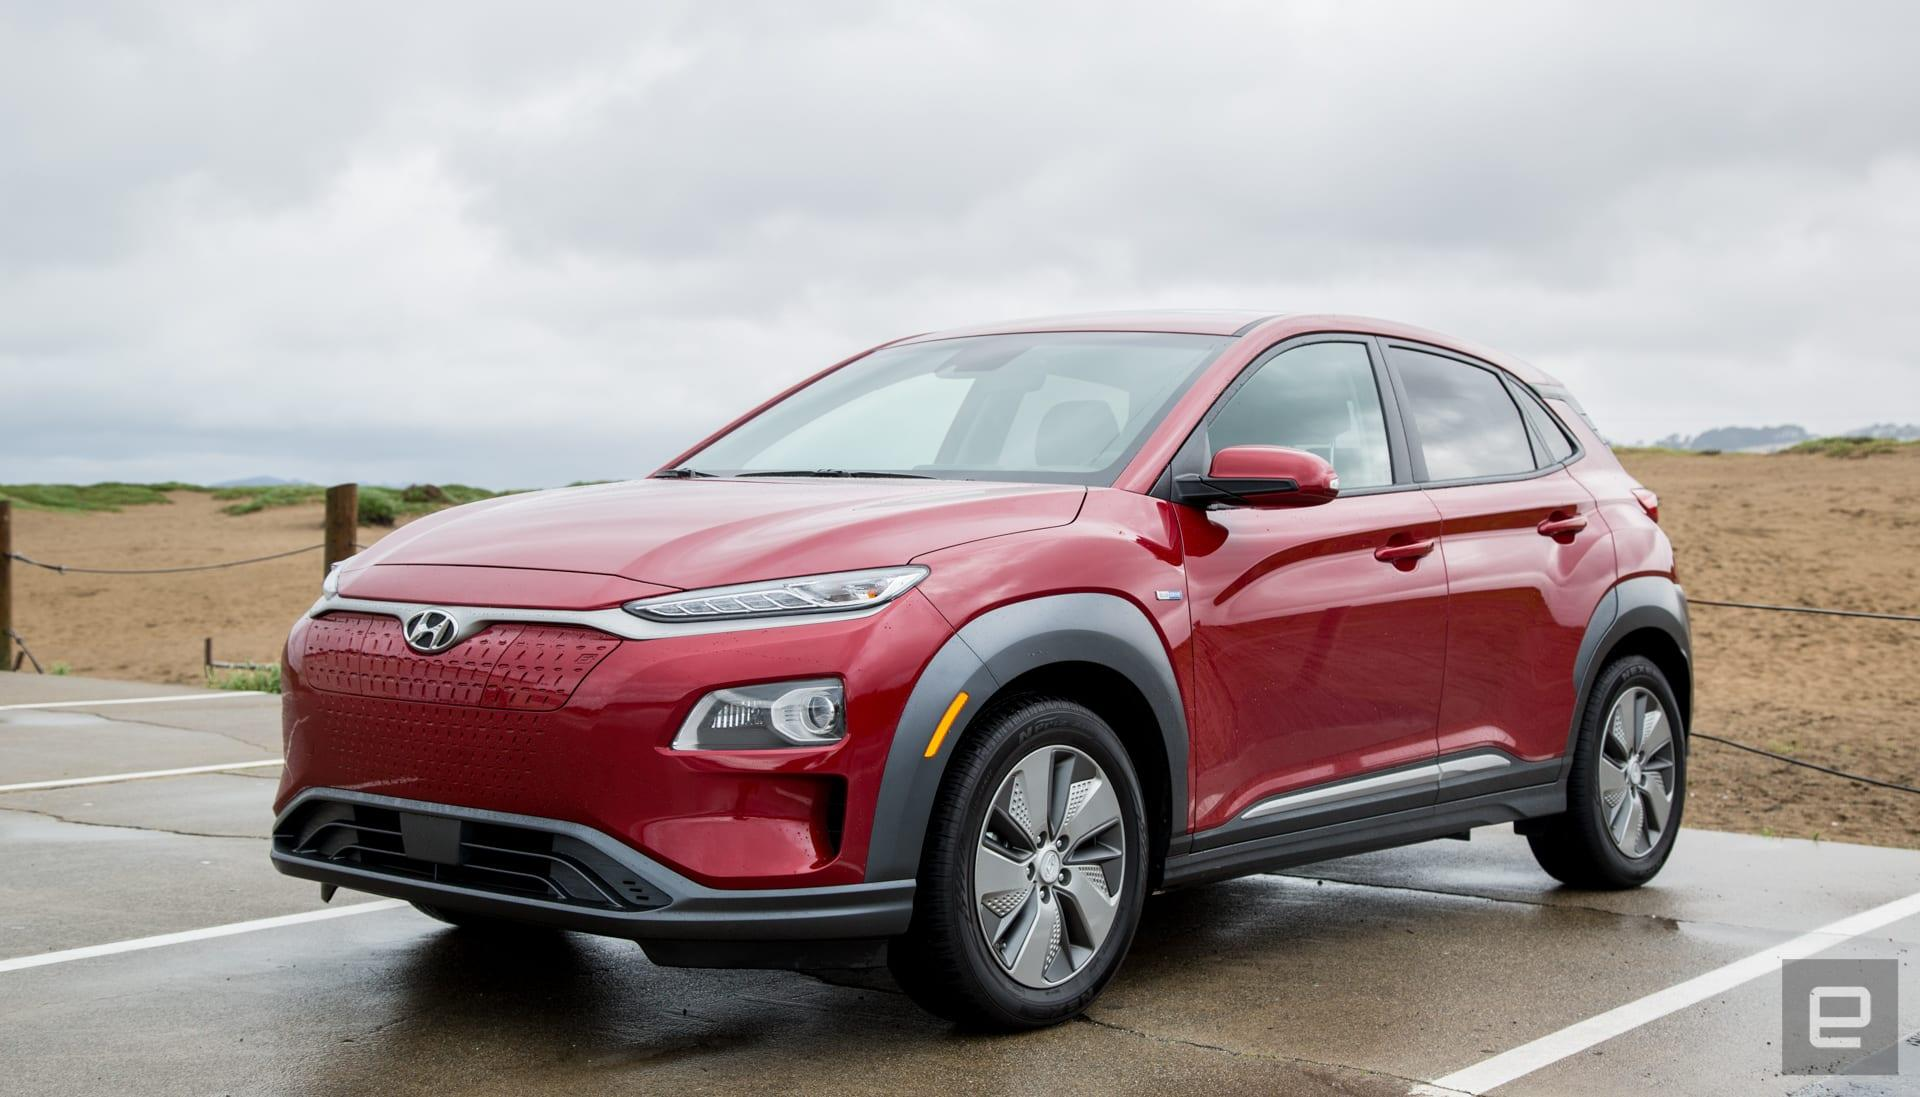 hyundai s kona ev is the car you didn t know you were waiting for engadget hyundai s kona ev is the car you didn t